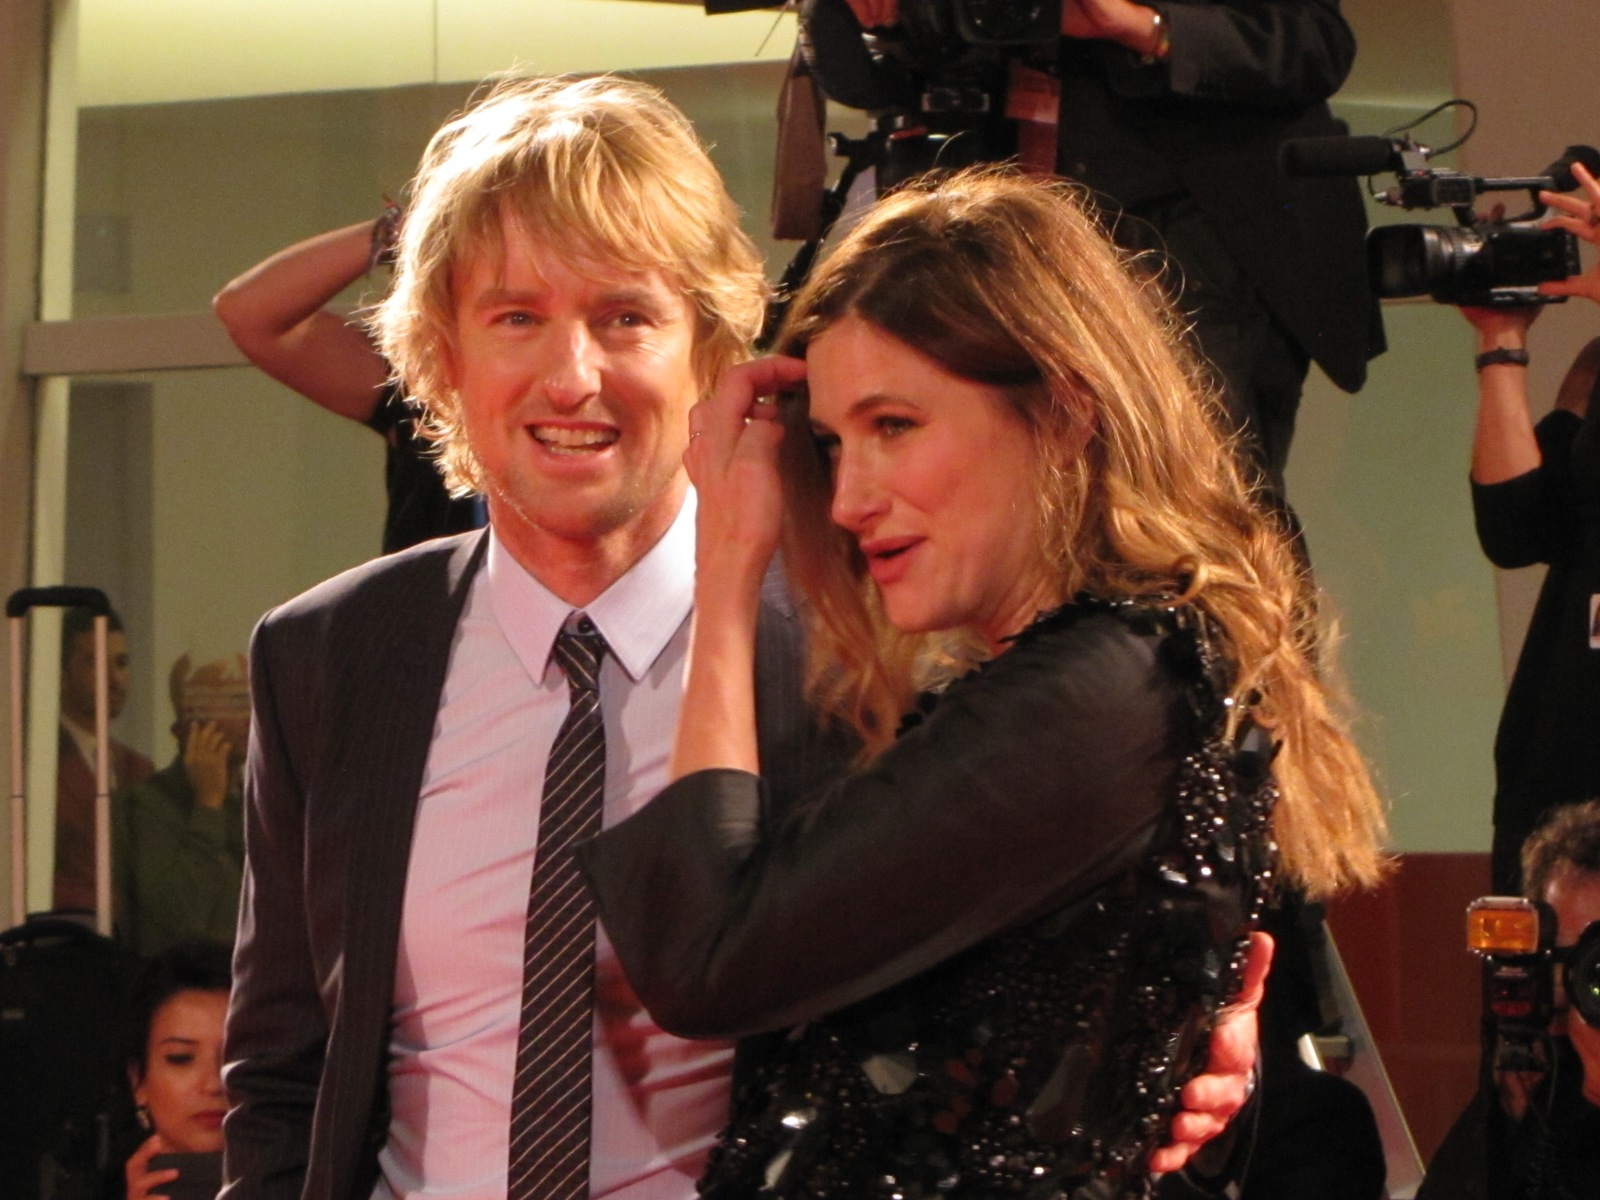 Owen Wilson a Venezia 2014 insieme a Louise Stratten per She's Funny That Way